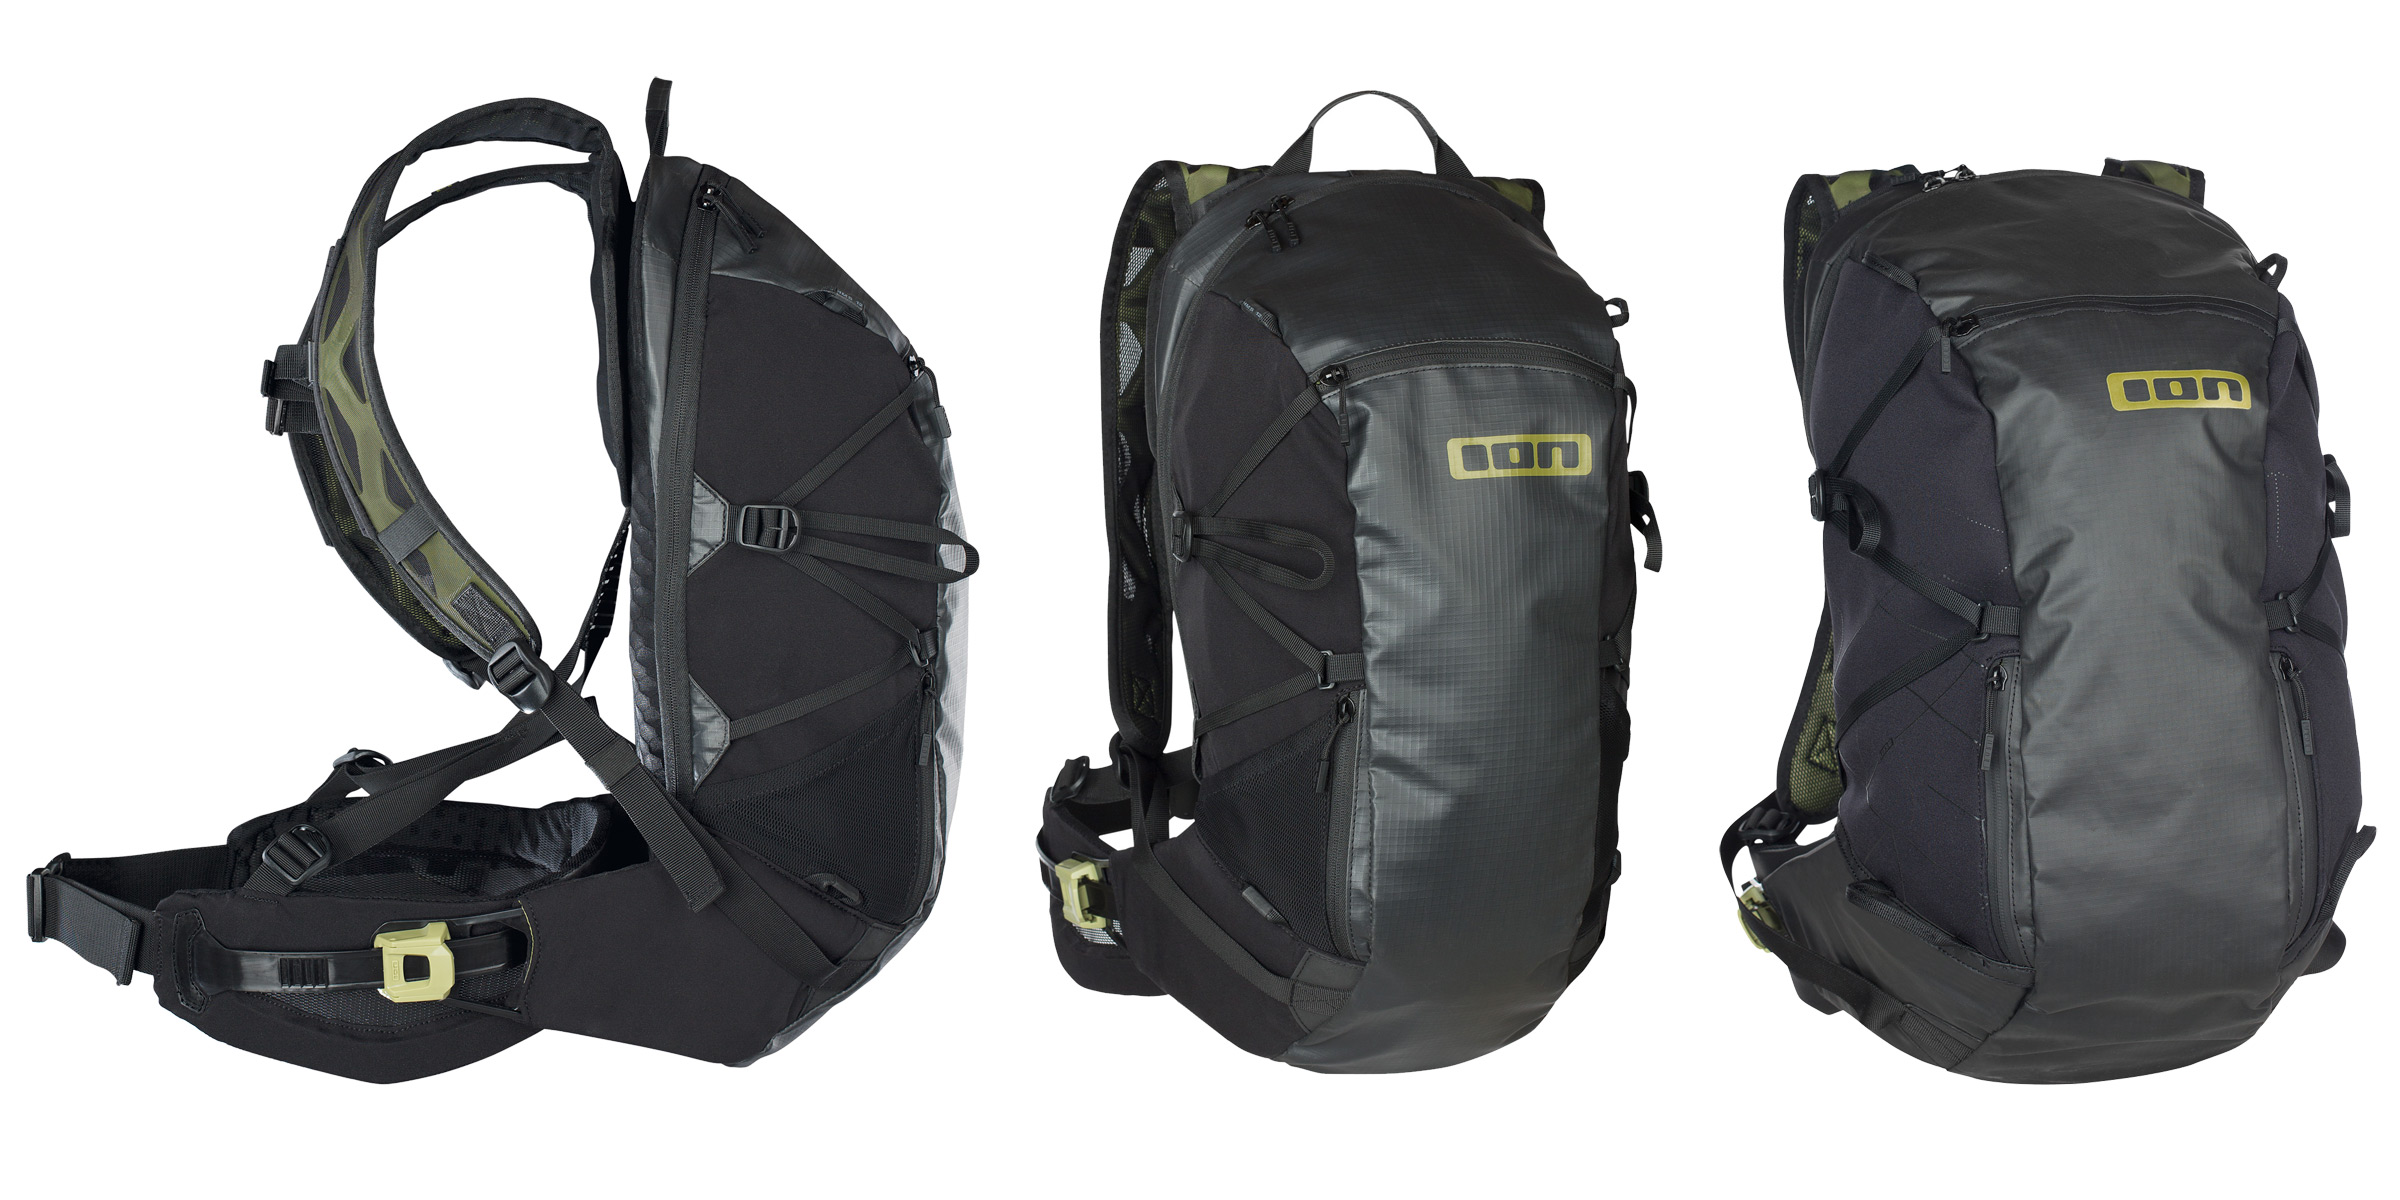 Cool Looking Backpacks fLKKjgCt